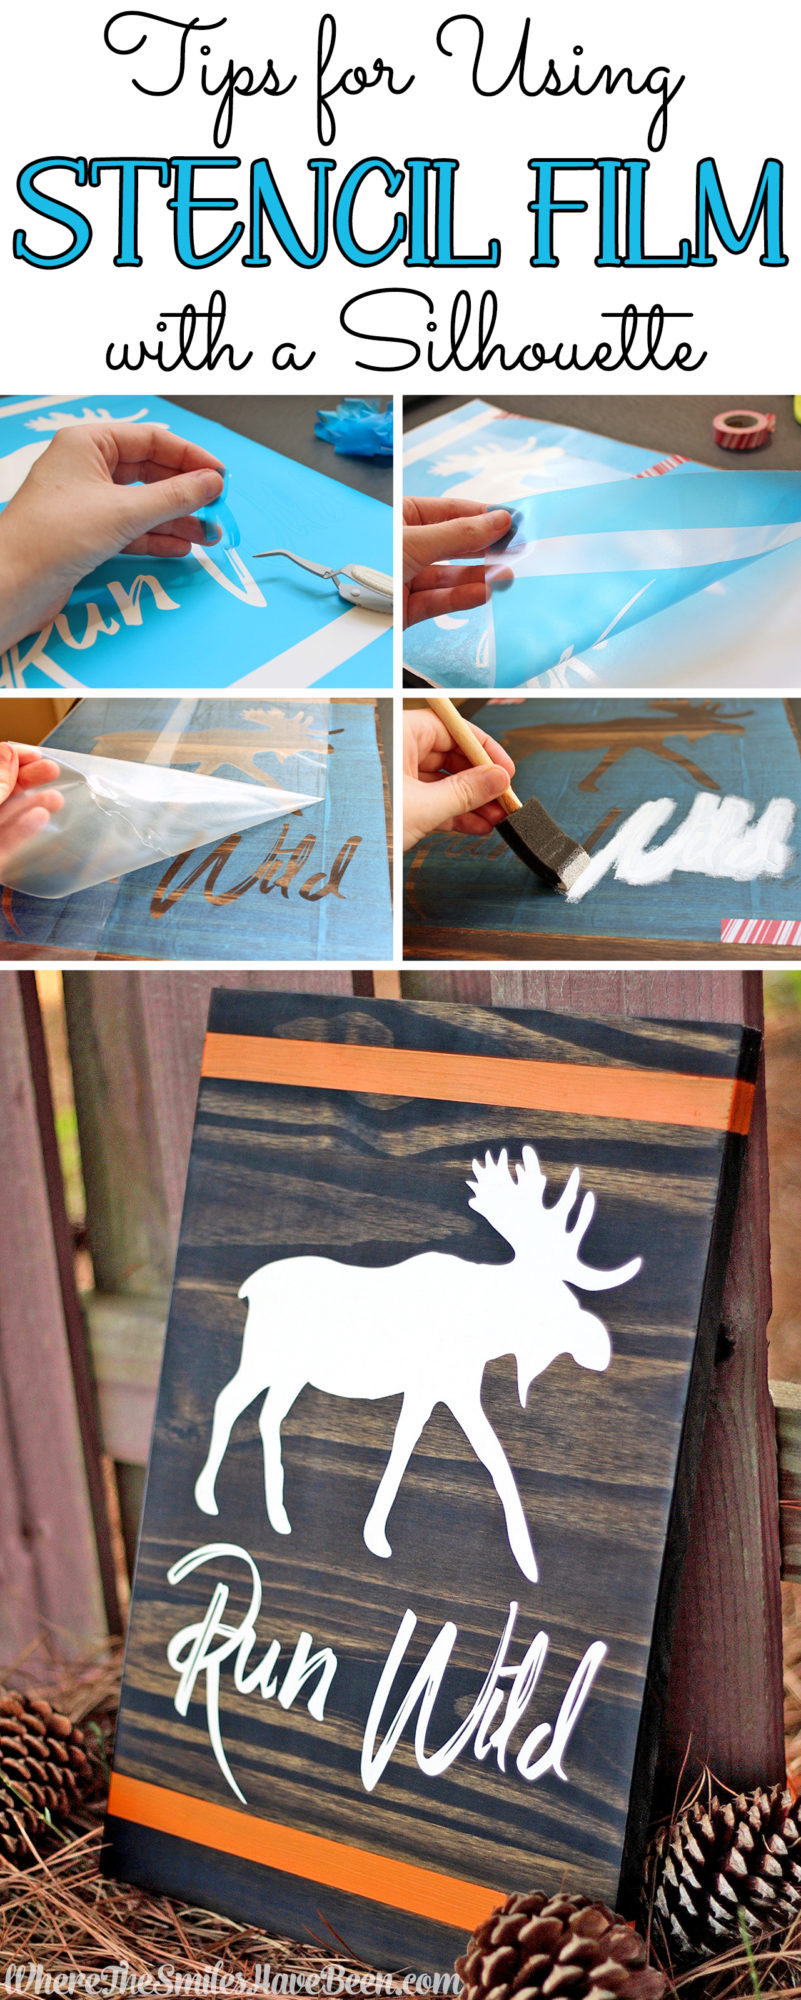 How to Use Stencil Film with Cutting Machines like a Silhouette or Cricut!